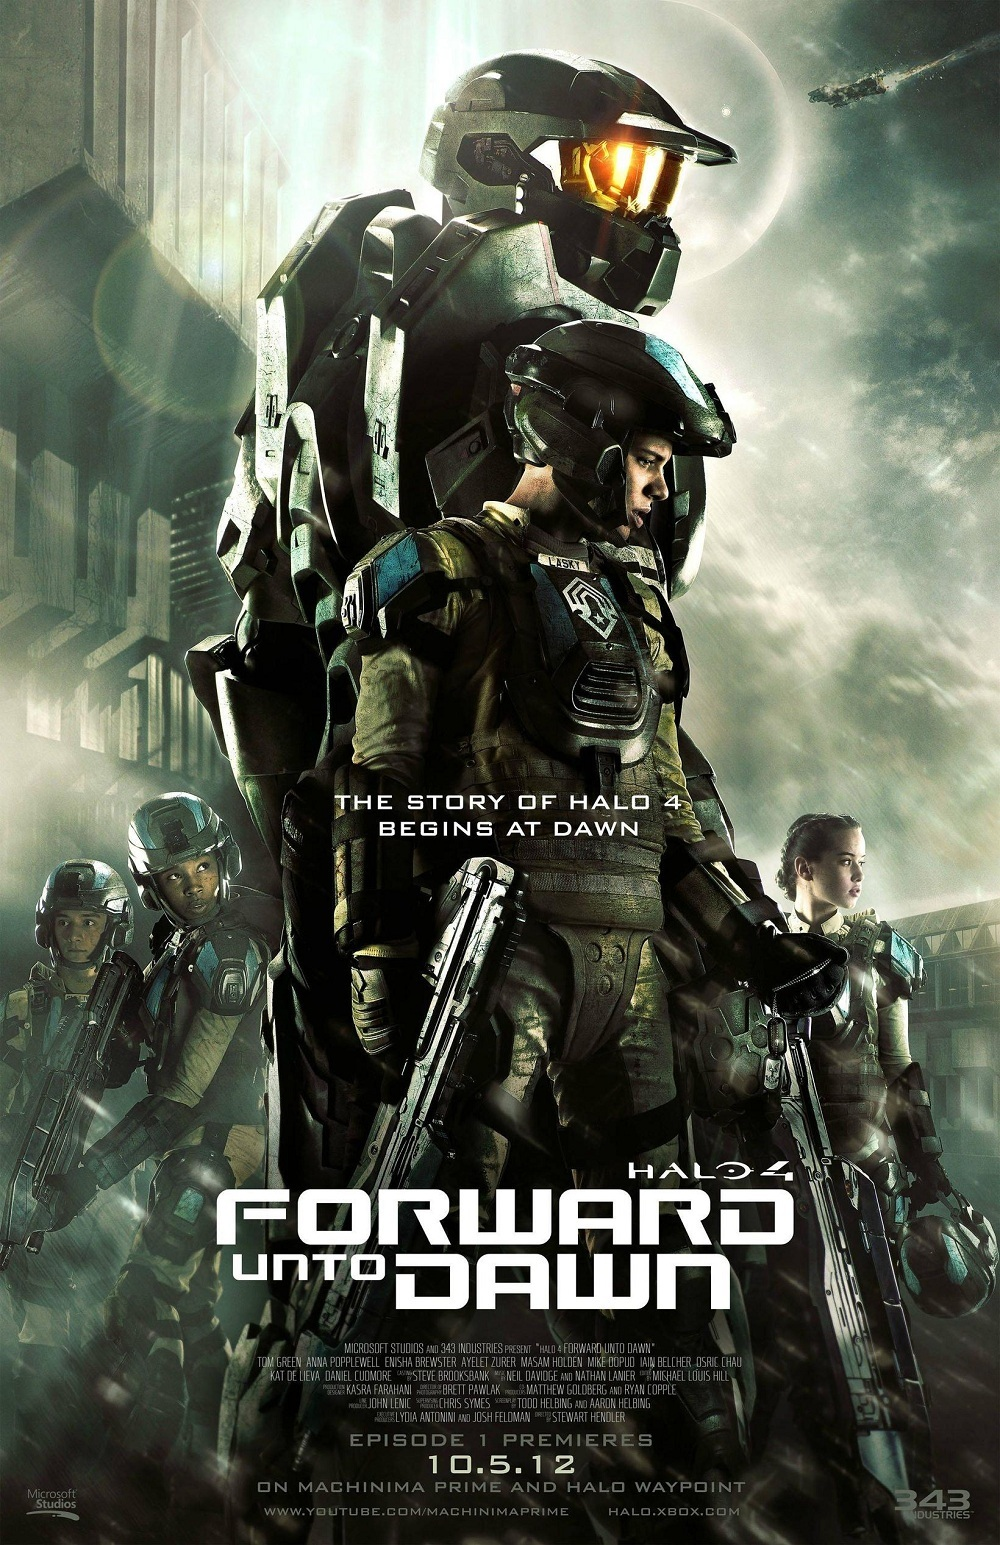 Mshalo 4 Forward Unto Dawn Soundtrackswallpaper Hd En